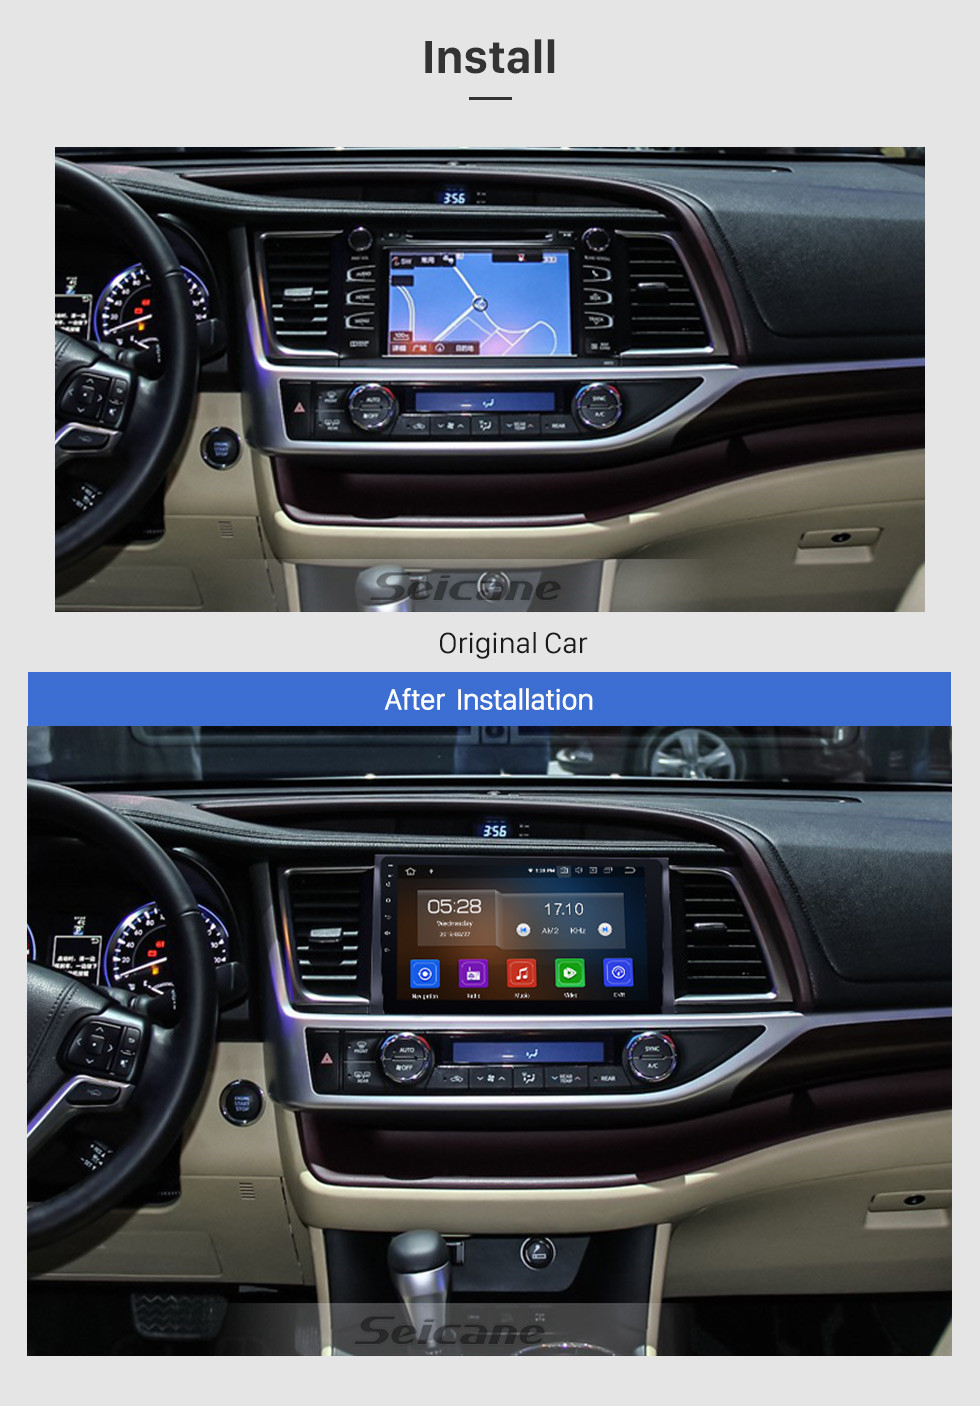 Seicane 10.1 Zoll 2015 Toyota Highlander Android 9.0 kapazitive Touch Screen Radio GPS Navigationssystem mit Bluetooth TPMS DVR OBD II Hintere Kamera AUX USB SD 3G WiFi Lenkrad-Steuerung Video